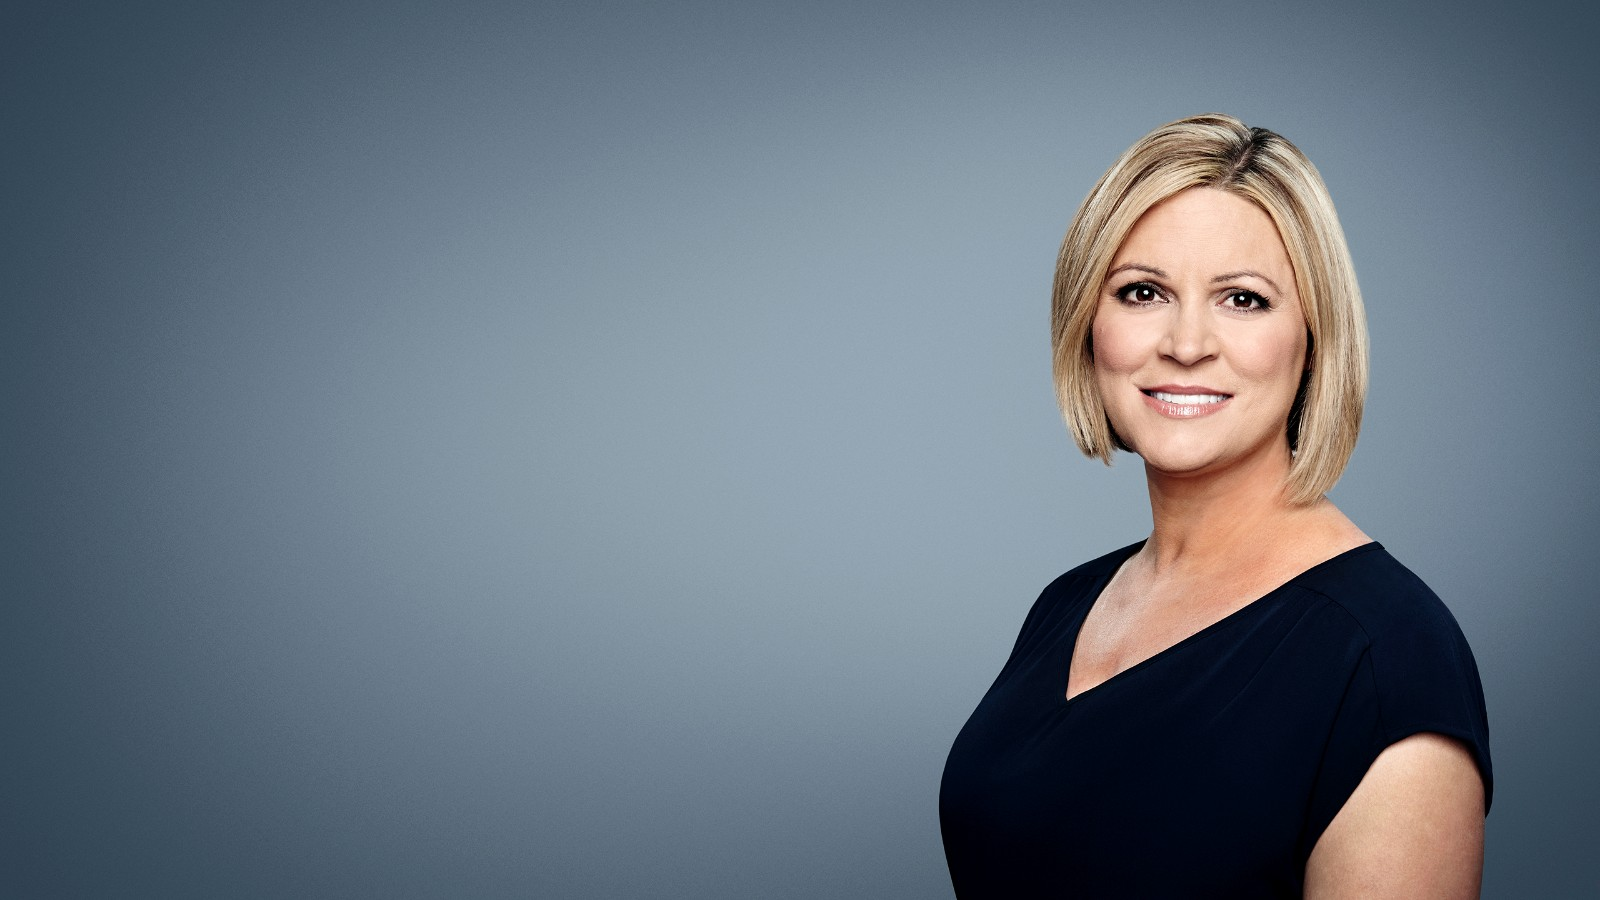 Cnn Profiles Jennifer Westhoven Cnn Com